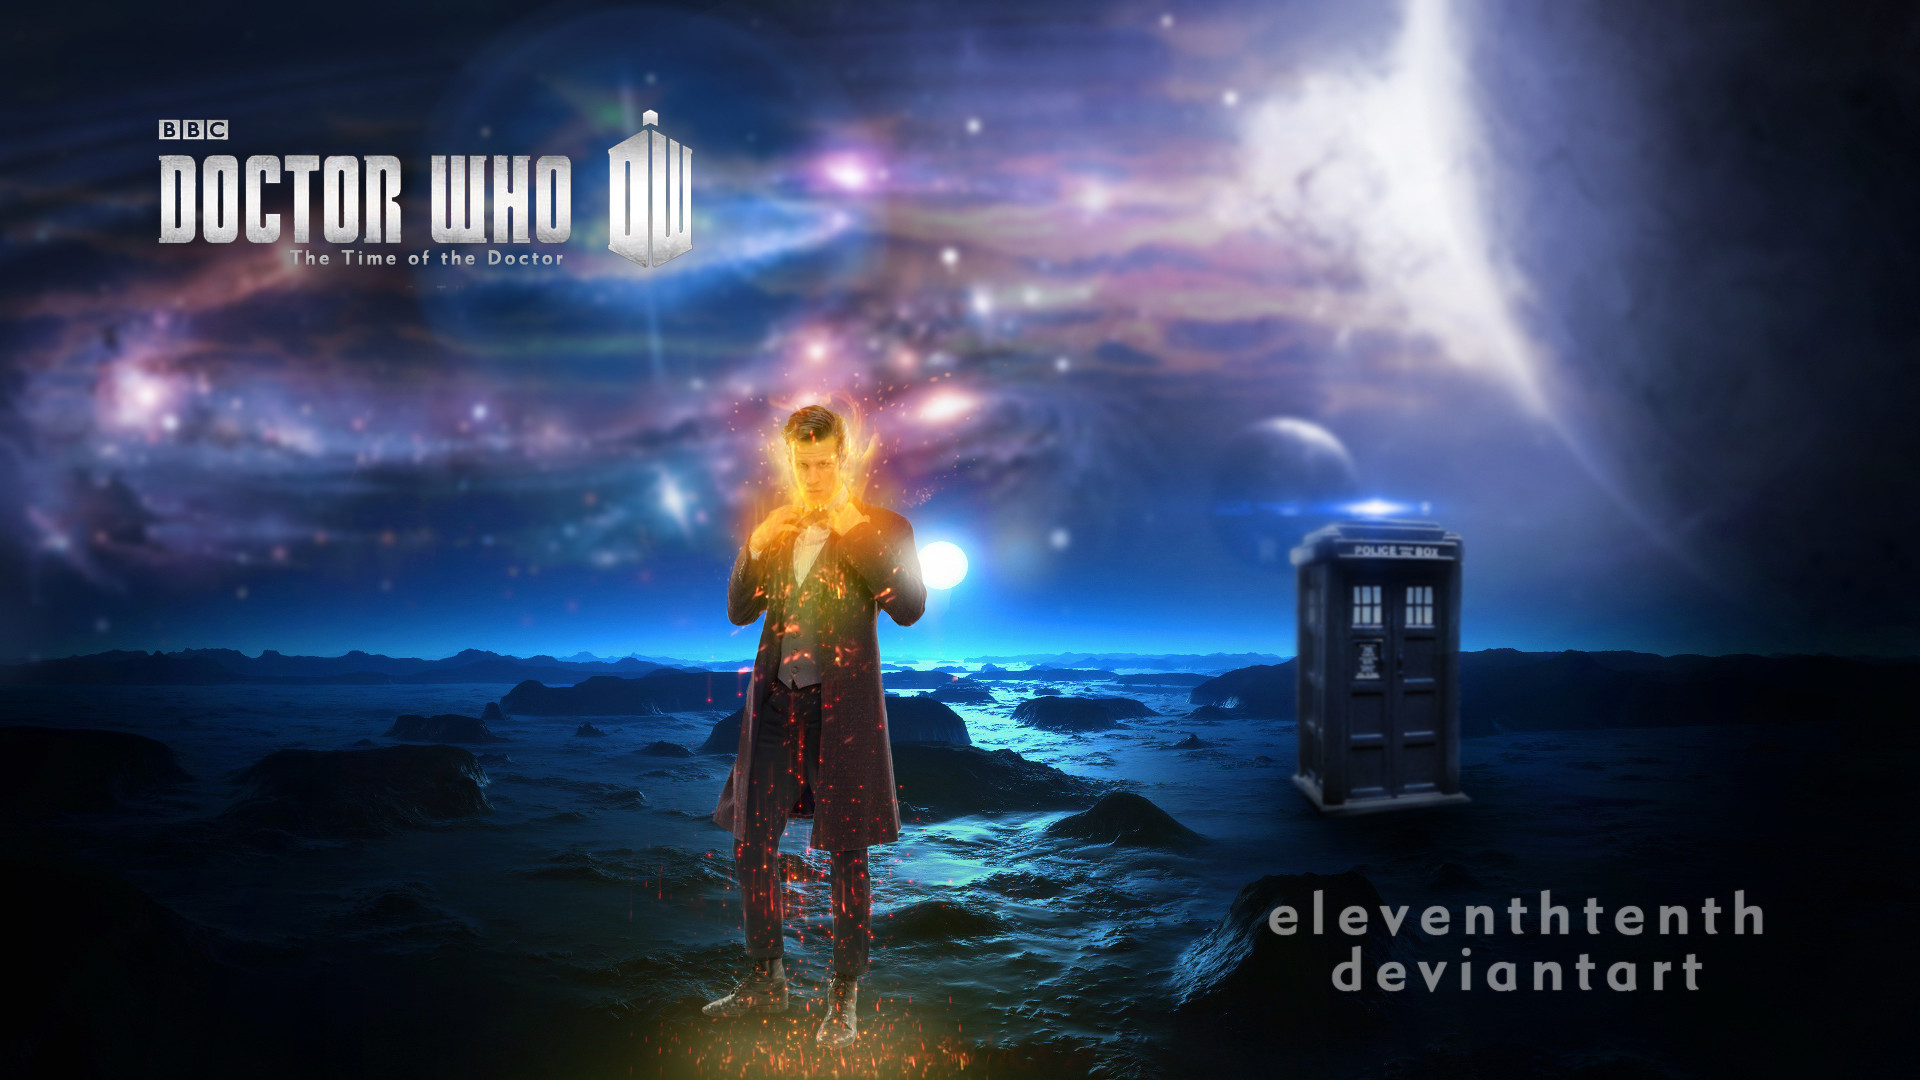 The Doctor And Amy Pond Doctor Who Wallpaper Doctor Who Wallpapers Matt  Smith Wallpapers)